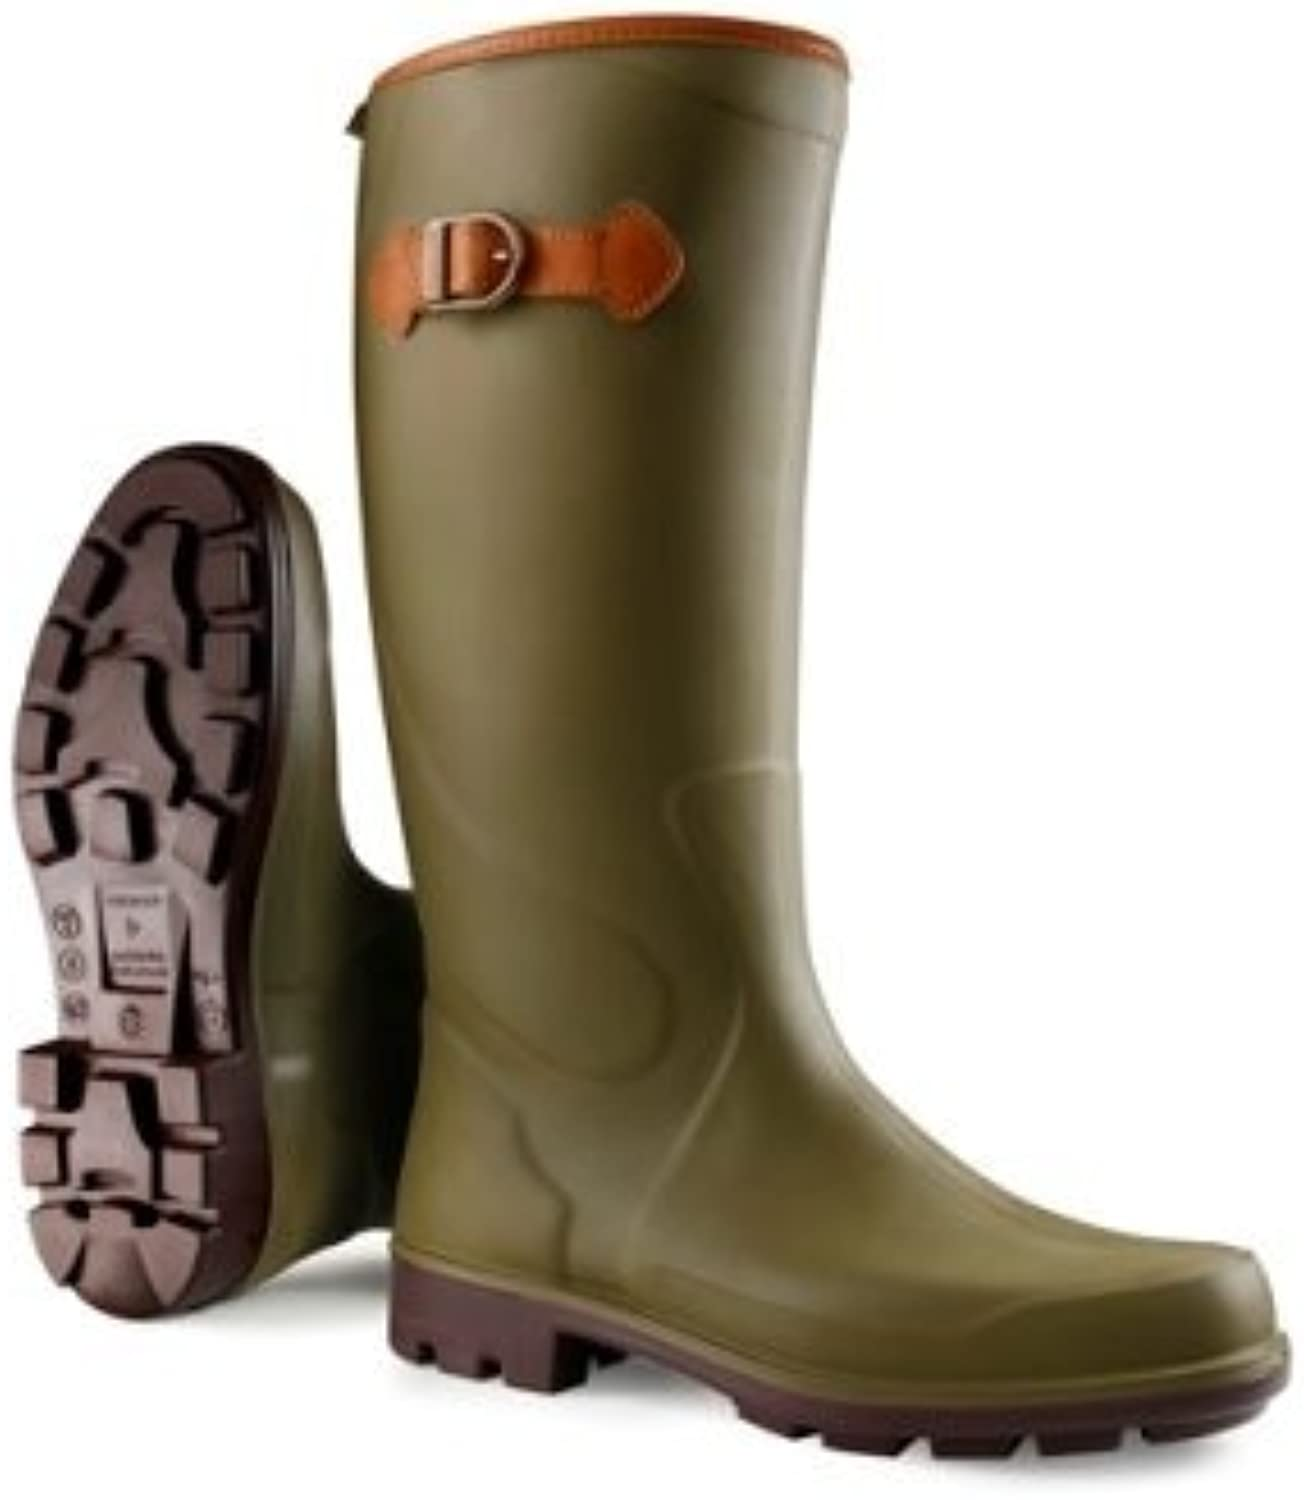 Dunlop  Purofort Islay Wellington Boots x Size 7 (41)